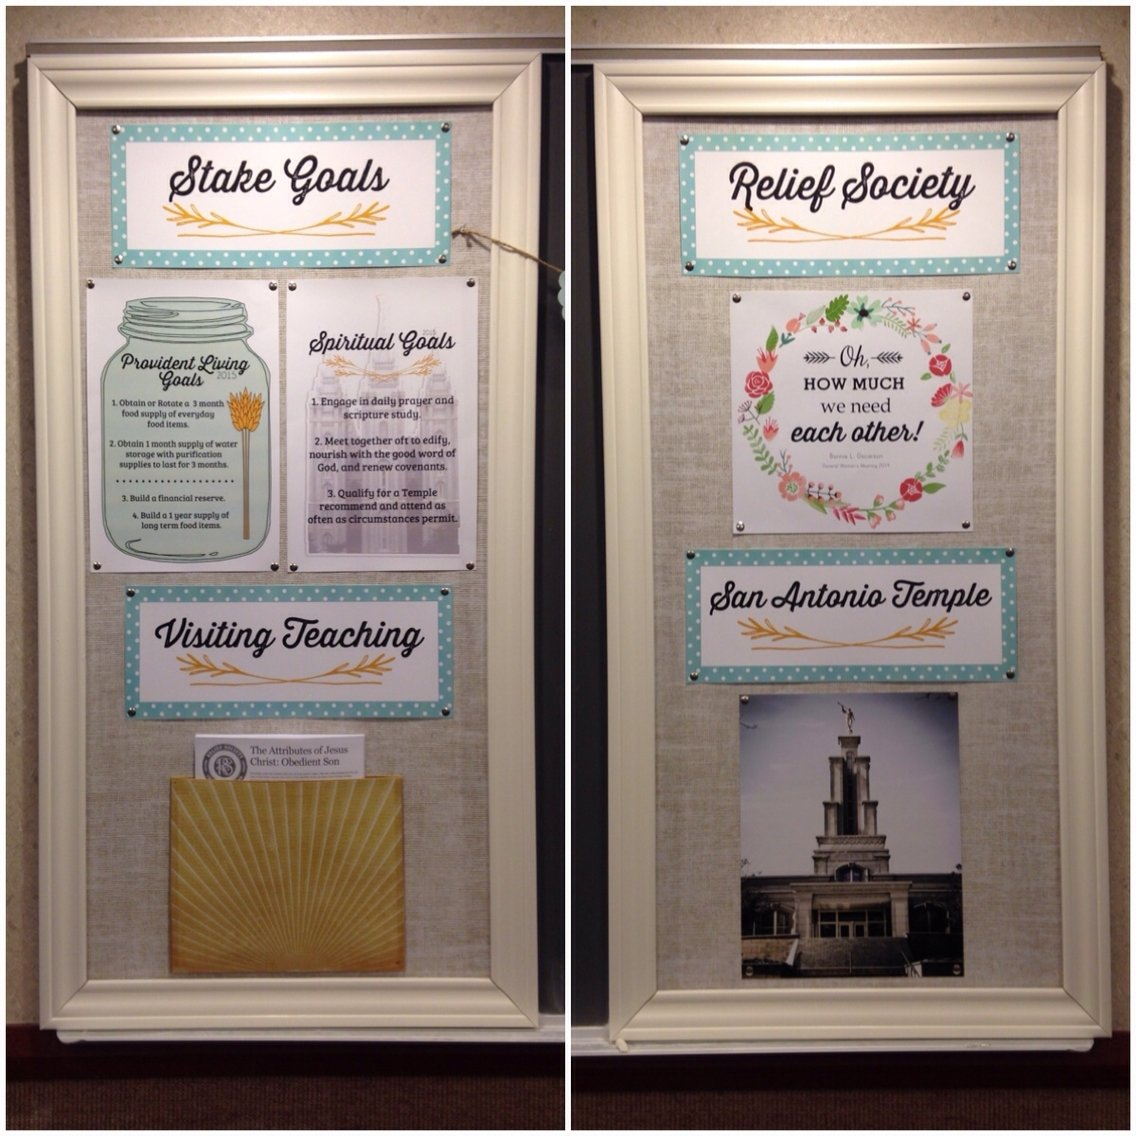 relief society bulletin board makeover. | relief society | pinterest